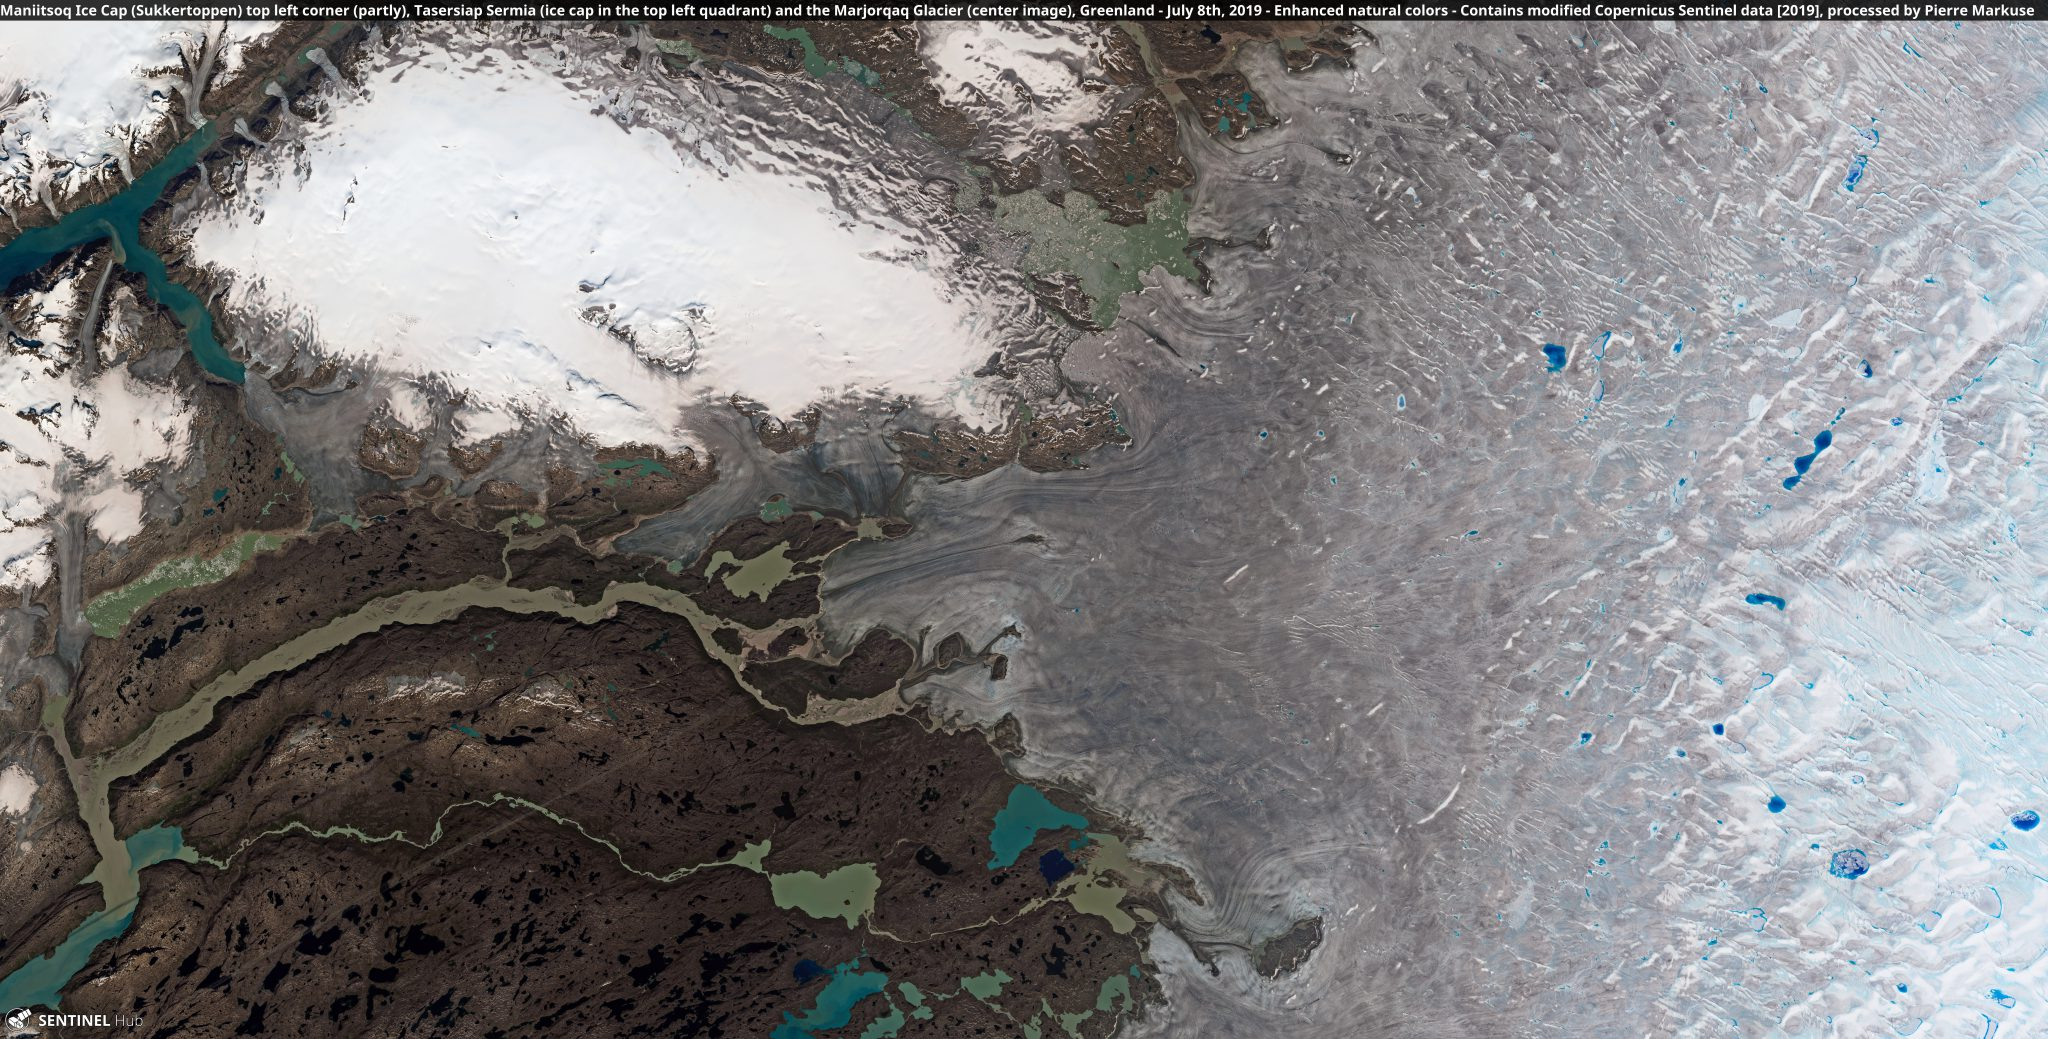 desc:Maniitsoq Ice Cap (Sukkertoppen) top left corner (partly), Tasersiap Sermia (ice cap in the top left quadrant) and the Marjorqaq Glacier (center image), Greenland Copernicus/Pierre Markuse